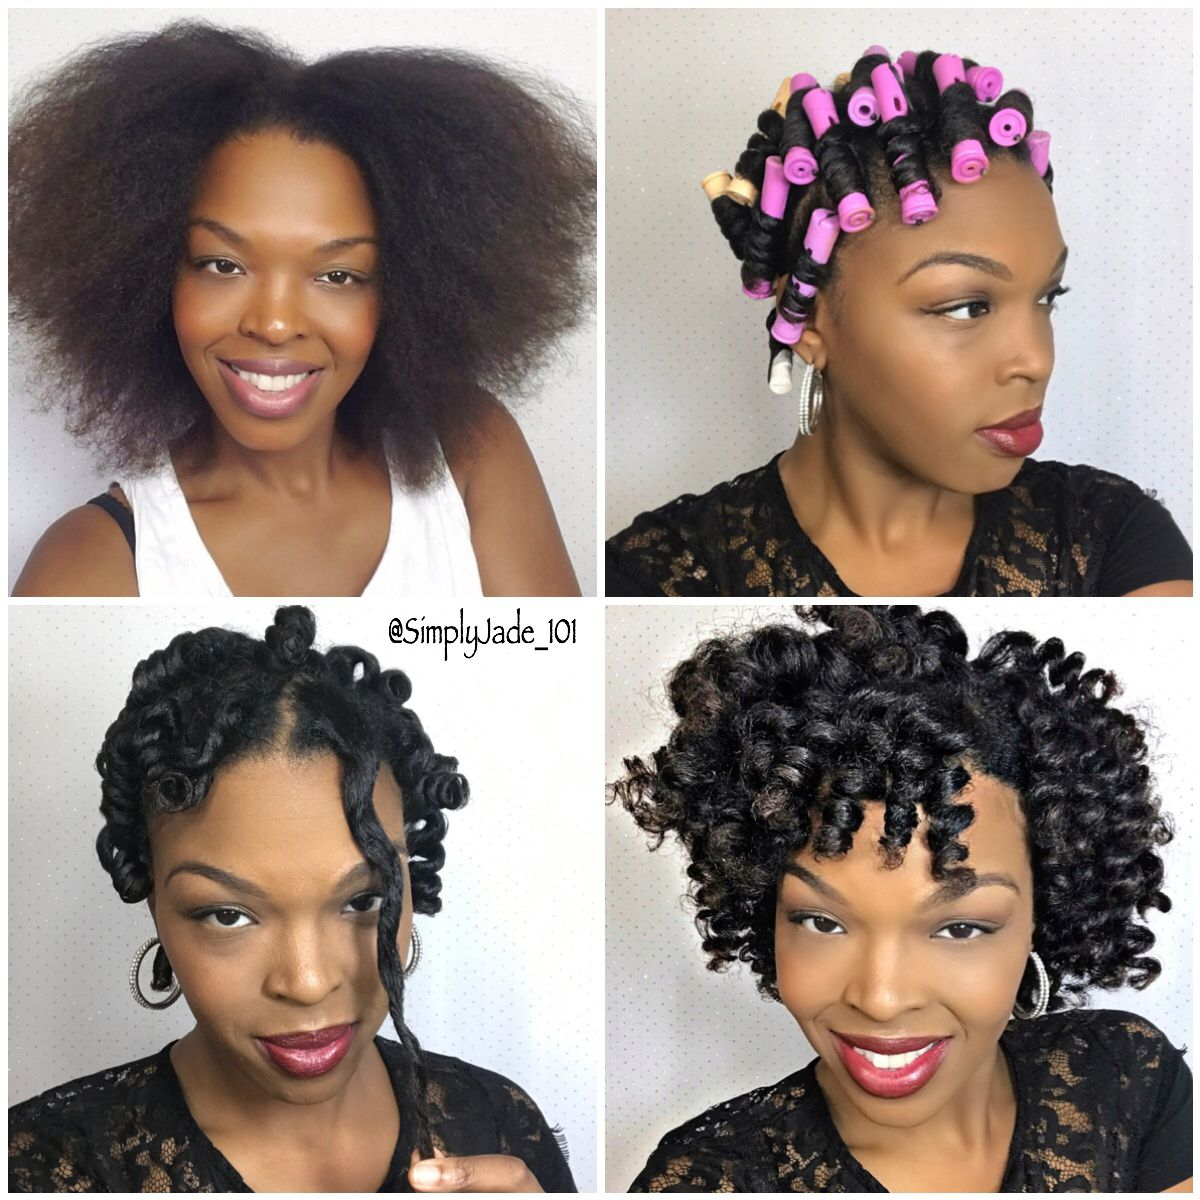 Perm Rod Set Pictorial For Short Medium Length Hair Full Tutorial Youtube Com Simplyjade101 Natural Hair Styles Medium Hair Styles Medium Length Hair Styles